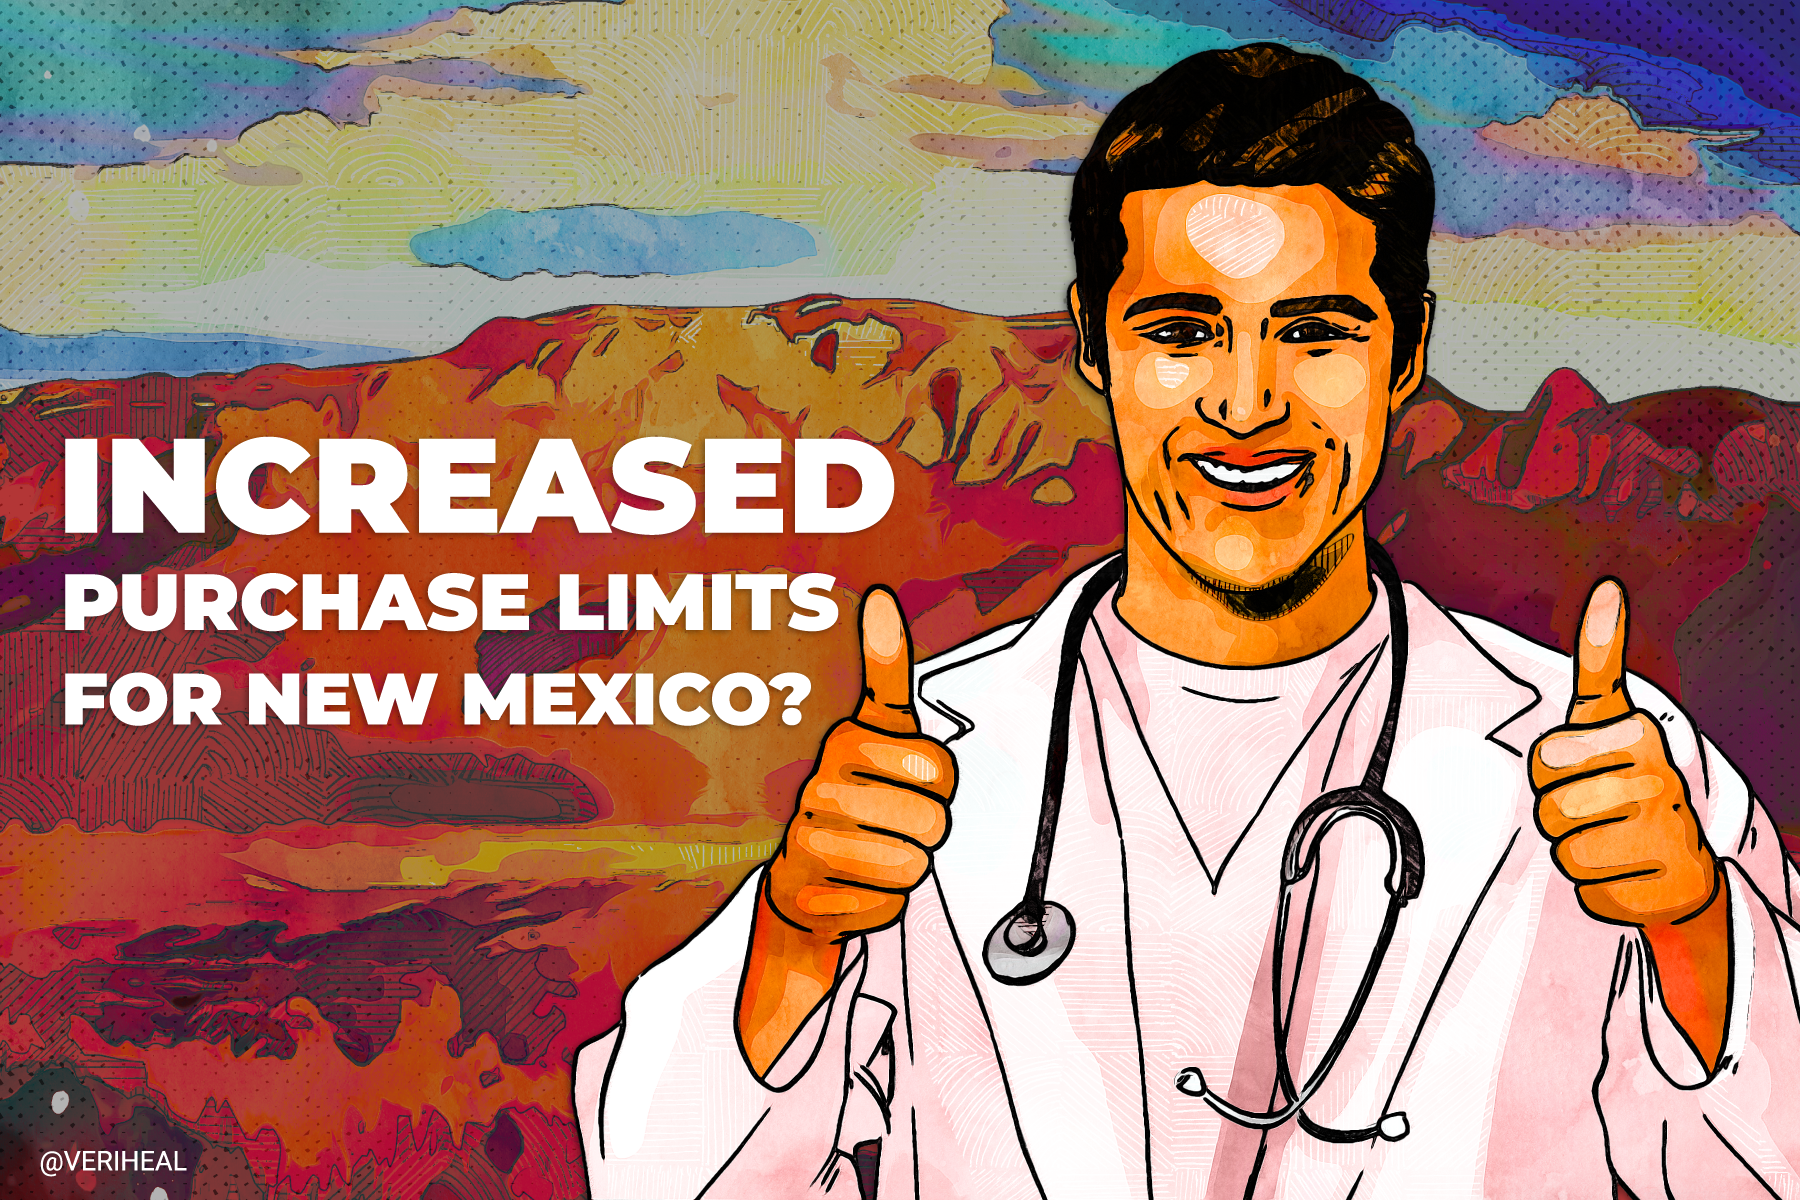 New Mexico Judge Calls for Increases for MMJ Purchase Limits